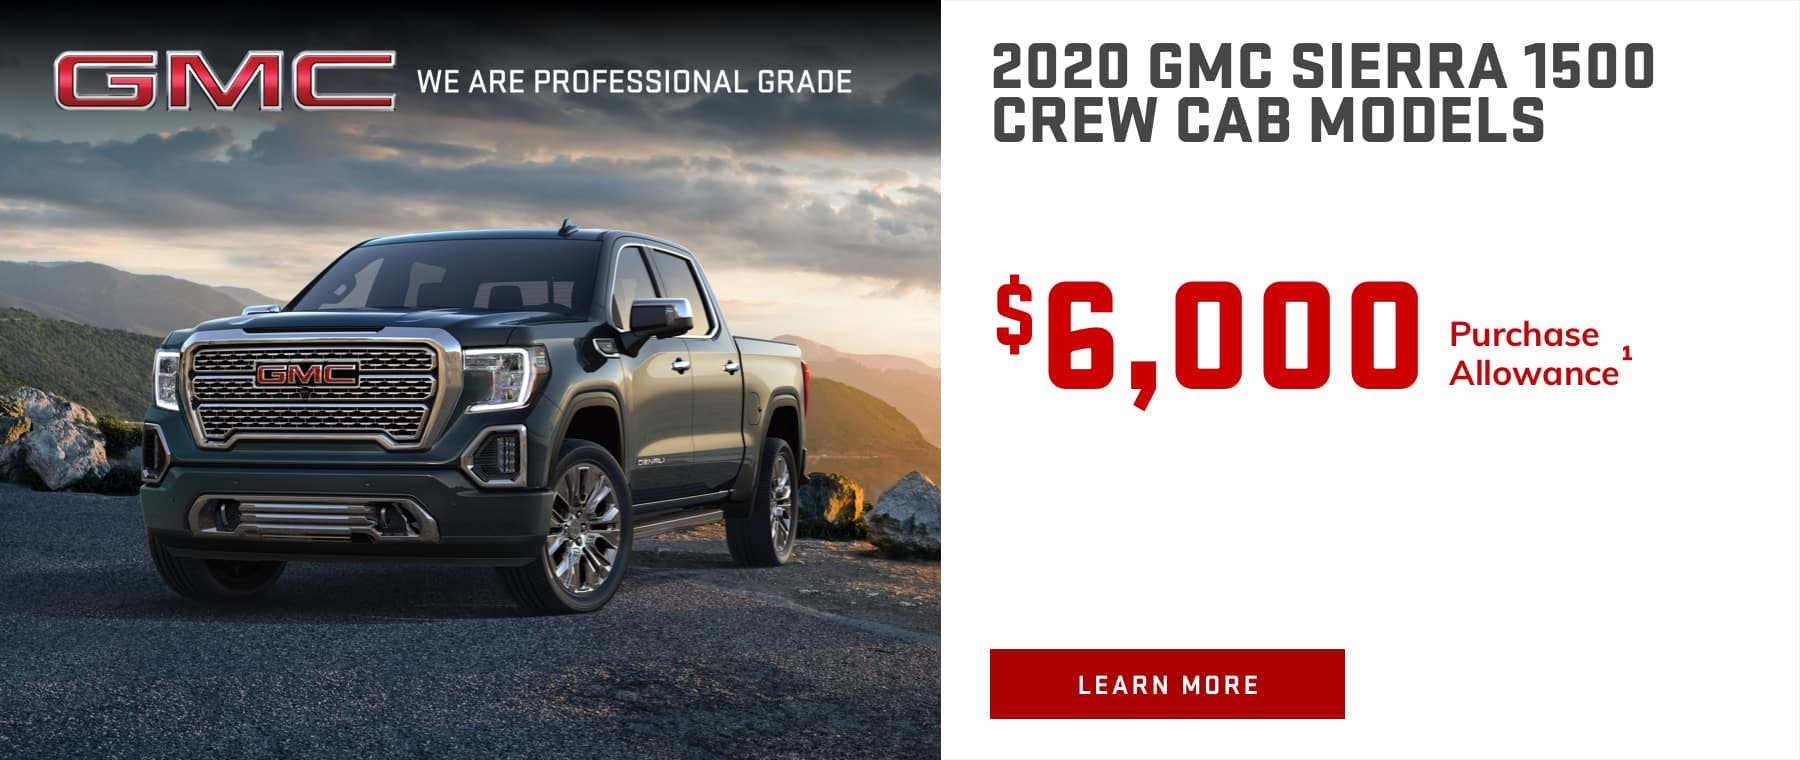 2020 GMC SIERRA 1500 CREW CAB MODELS - $6,000 Purchase Allowance